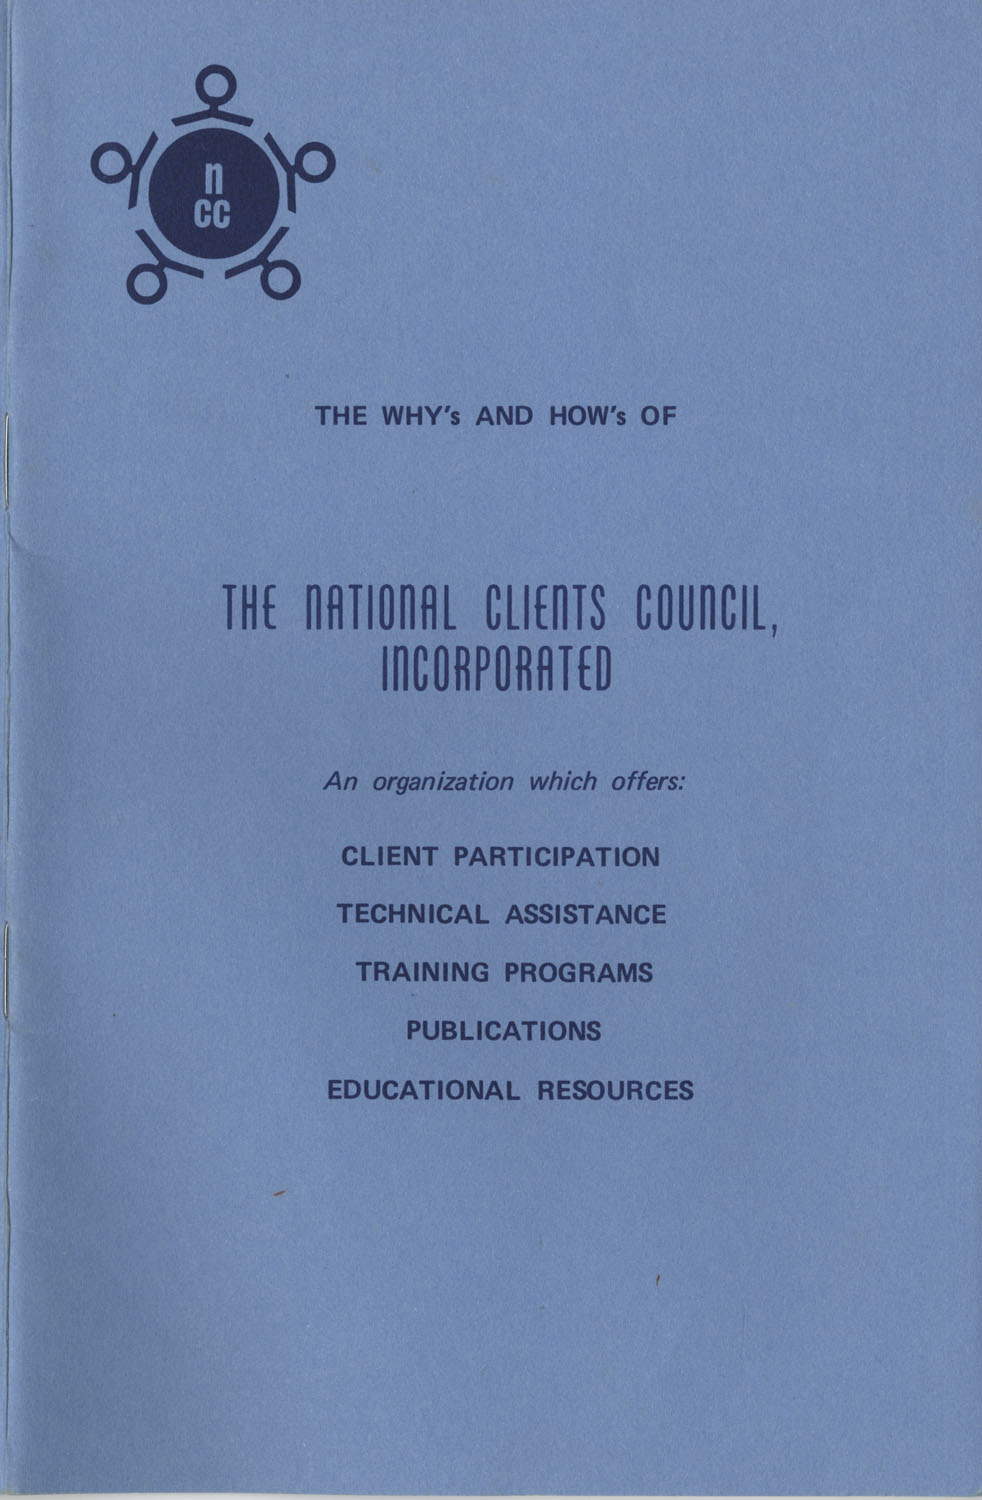 The Why's and How's of The National Clients Council